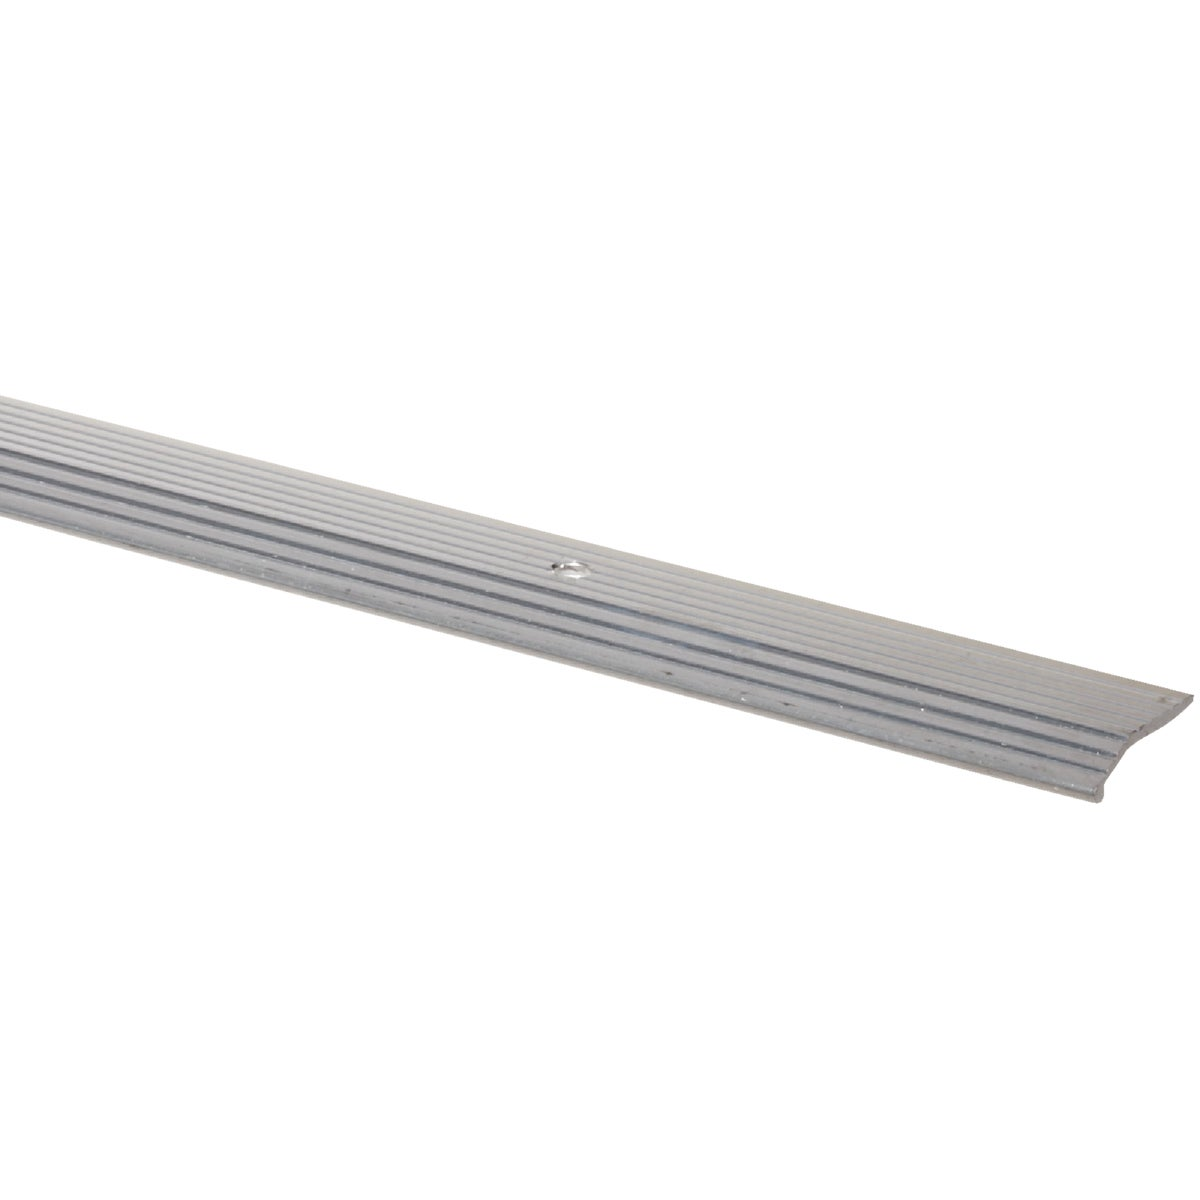 "3/4""X3' SLVR EDGING - 78030 by M D Building Prod"